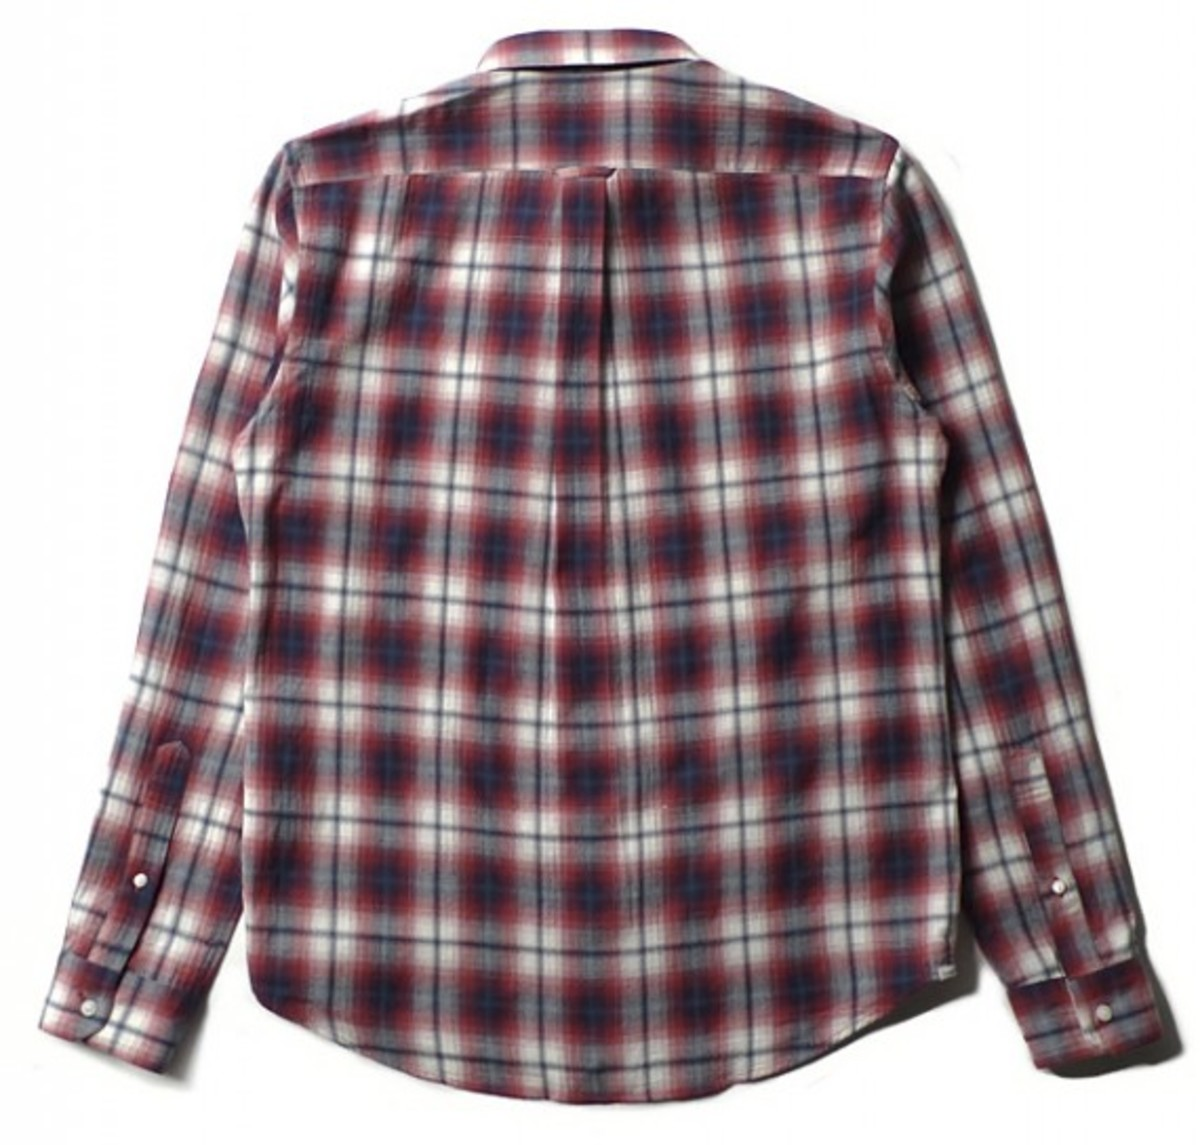 deluxe-greyhound-check-shirt-red-02